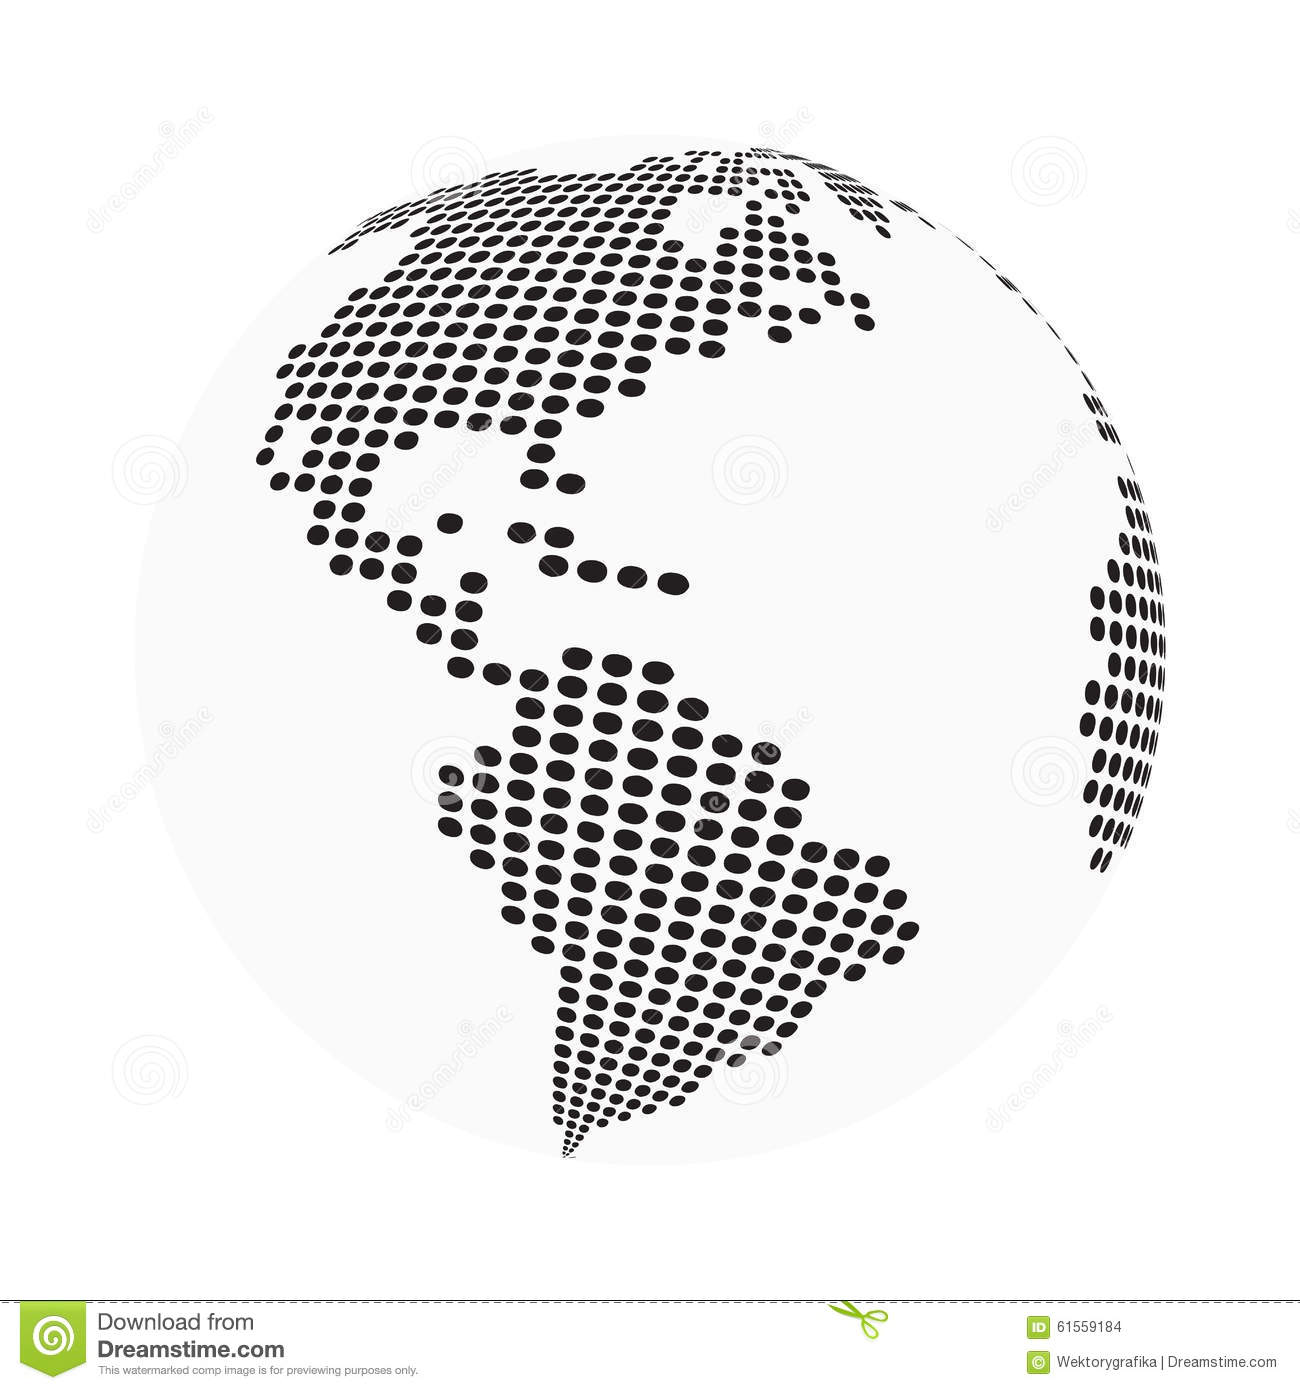 Globe earth world map - abstract dotted vector background. Black and white silhouette illustration